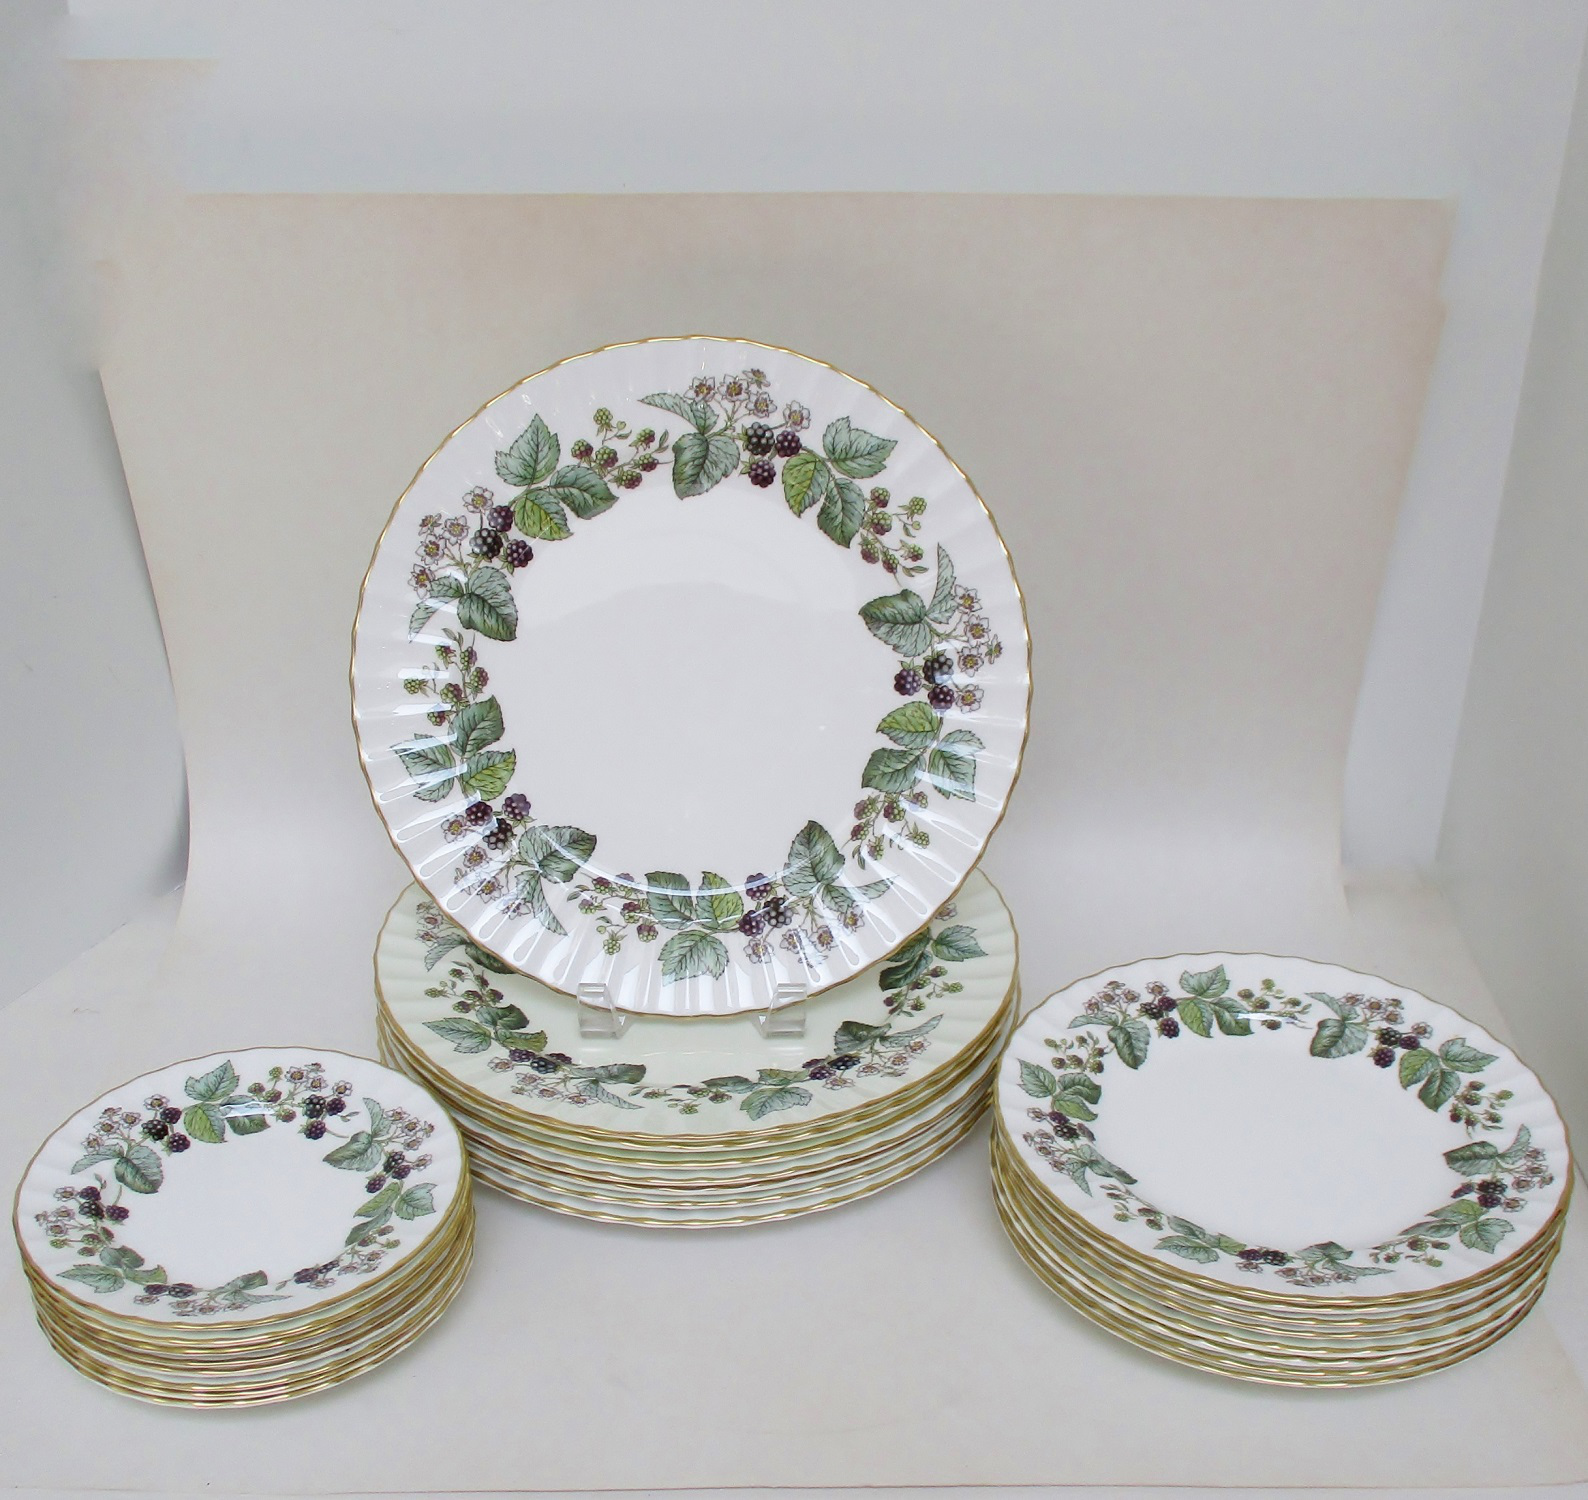 Vintage Royal Worcester Plates - Set of 24 - Image 4 of 7  sc 1 st  Chairish & Vintage Royal Worcester Plates - Set of 24 | Chairish